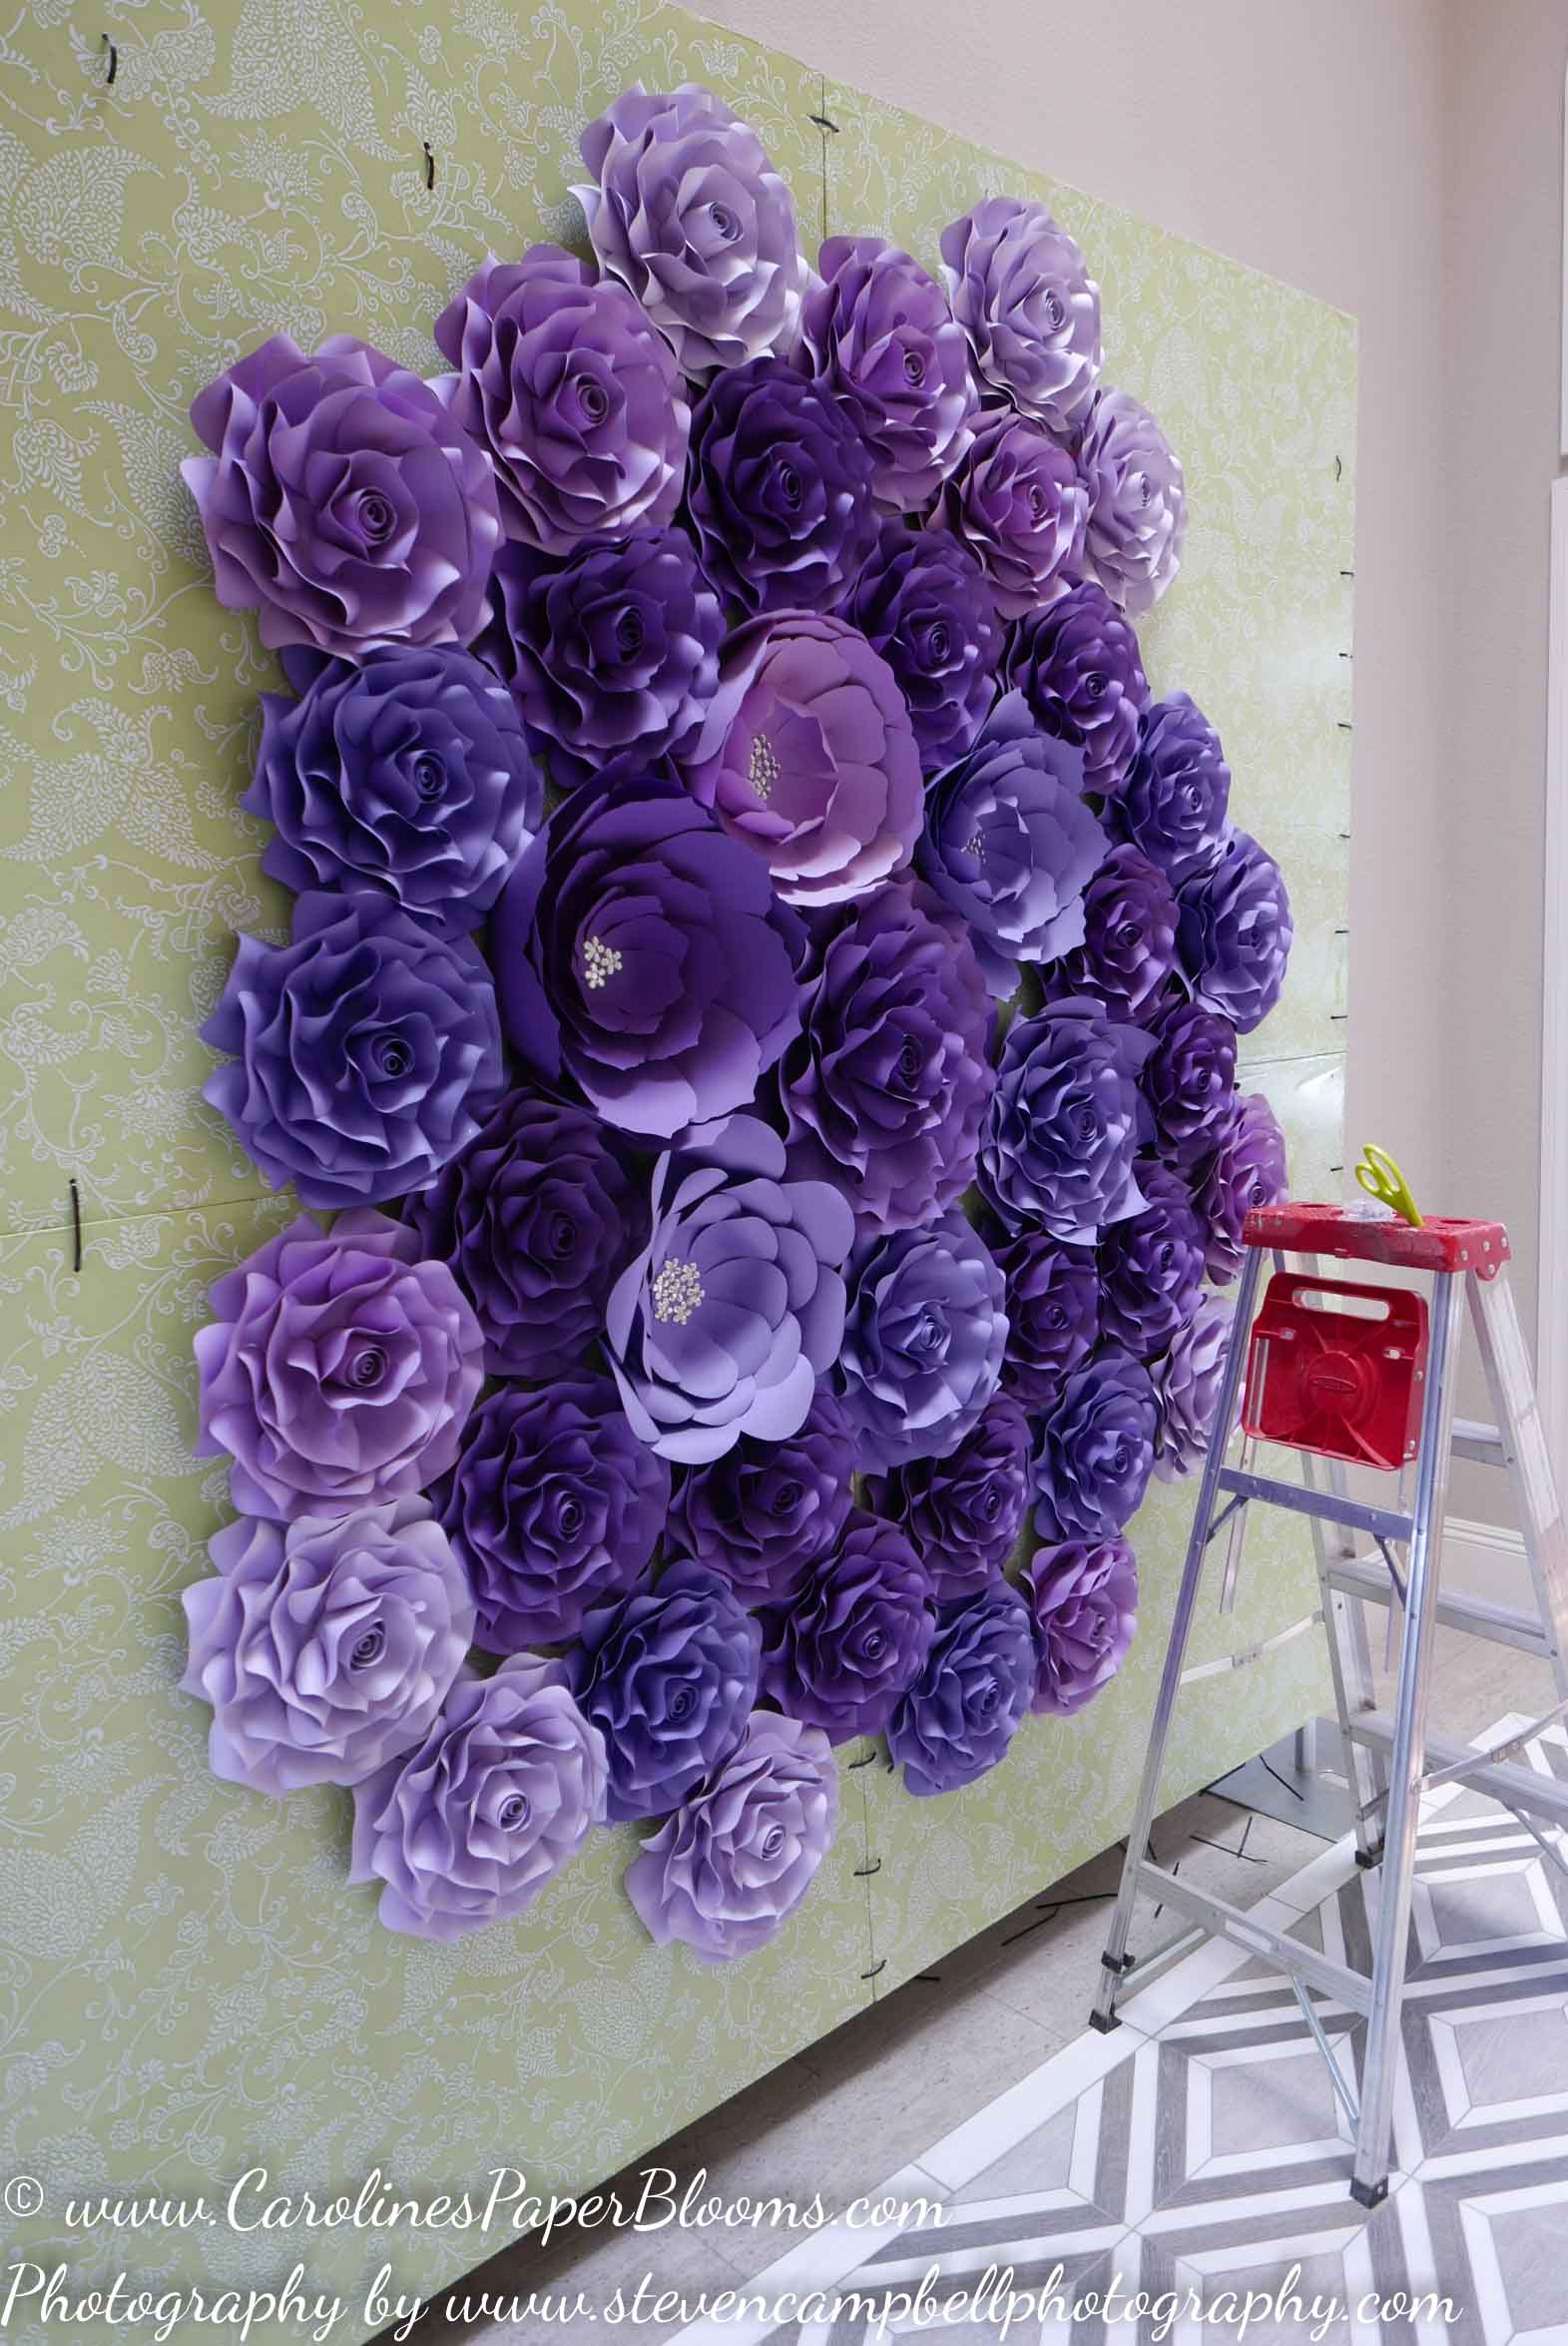 Custom Paper Flower Walls and Photography Backdrops